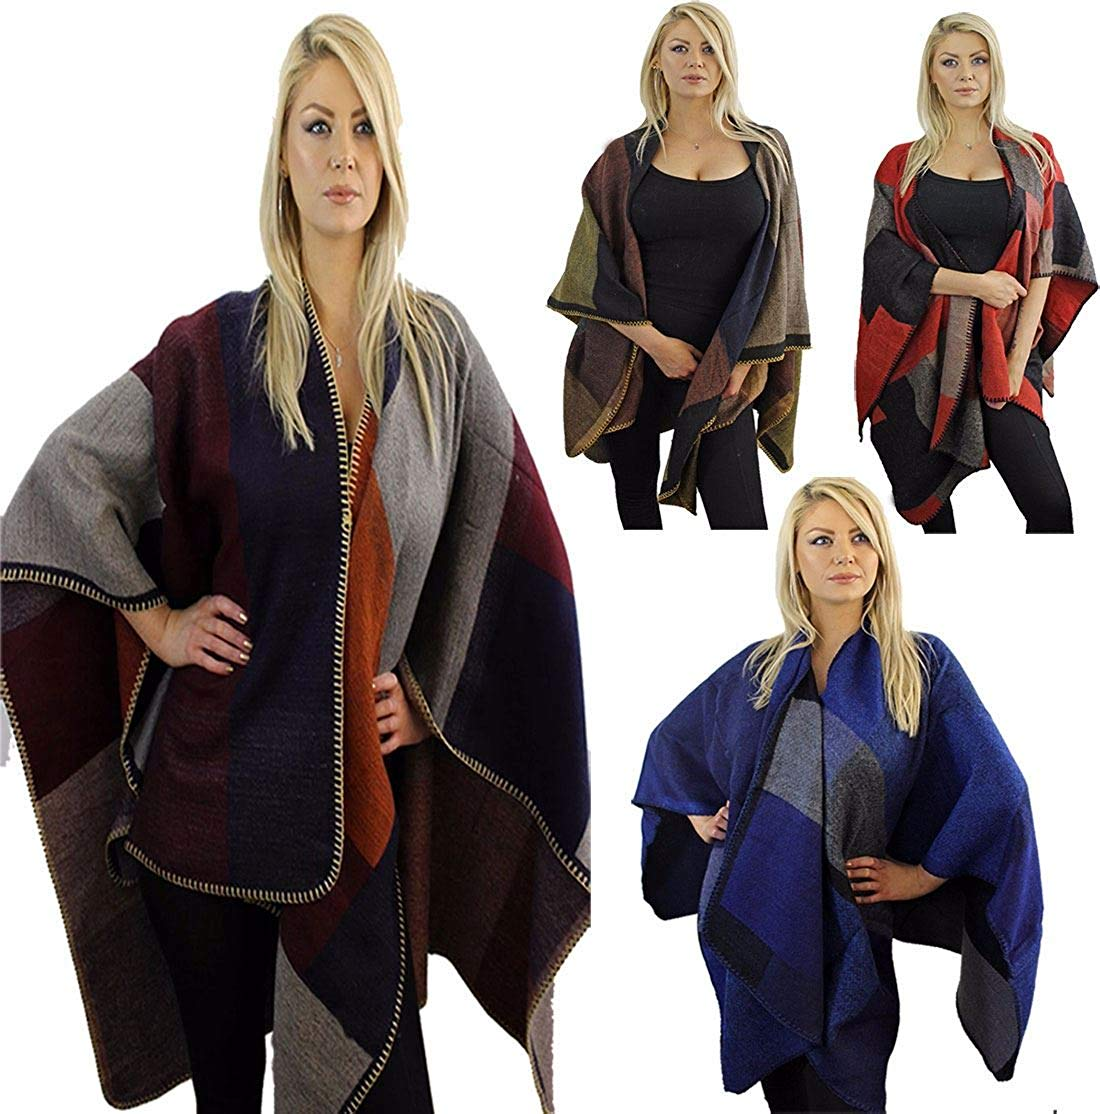 MA ONLINE Womens Warm Winter Thick Patchwork Throw Over Shawl Cape Ladies Casual Wear Blanket